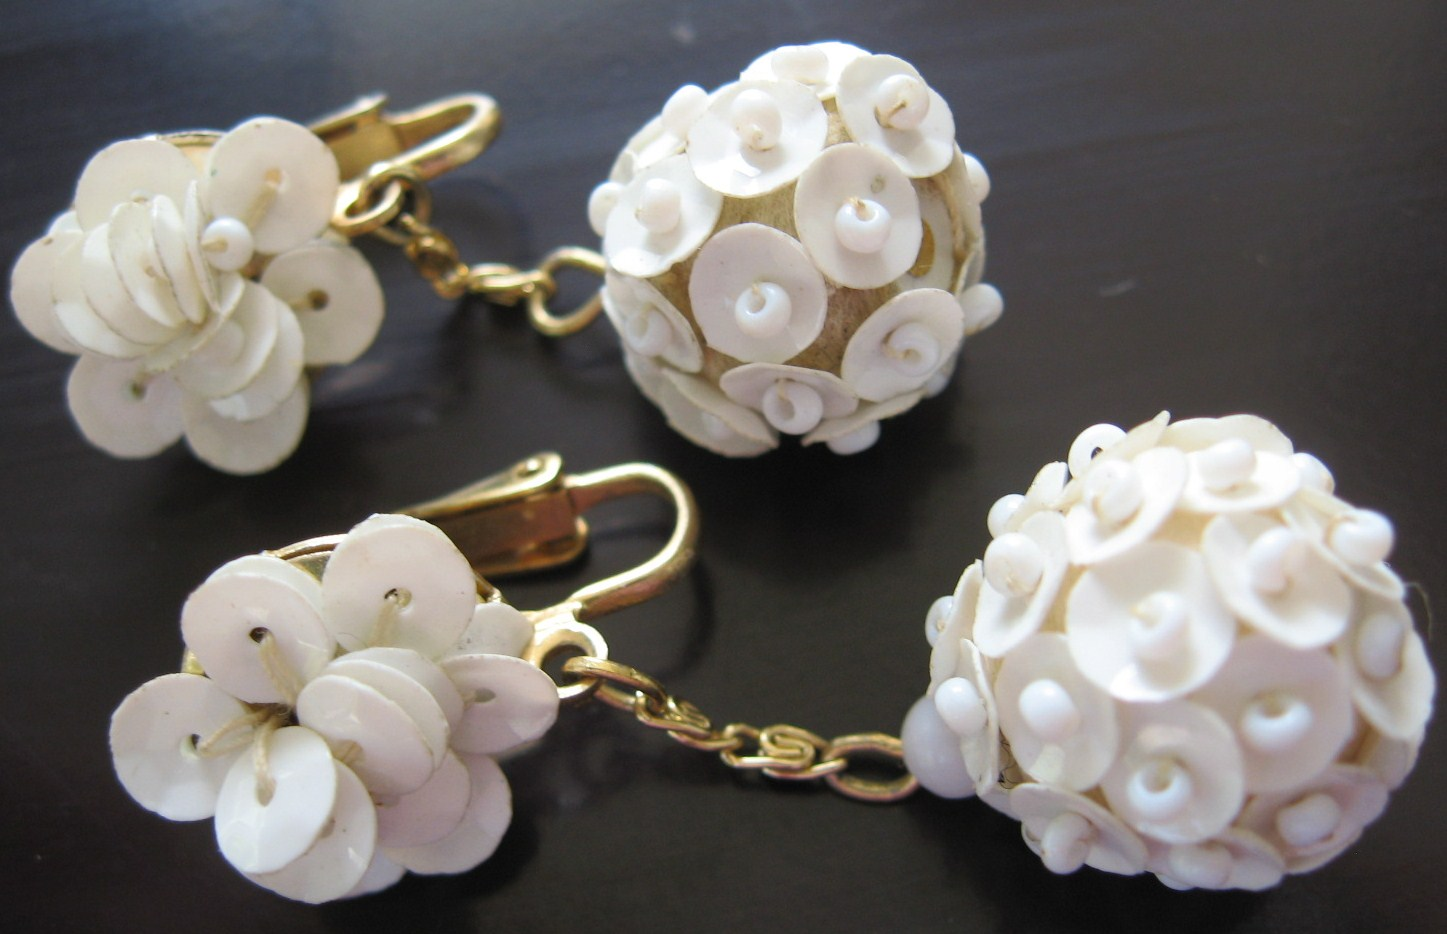 http://2.bp.blogspot.com/_fk0SNGFF6jw/TJZCXorLmHI/AAAAAAAABRU/3Ena1cd3suk/s1600/earrings+-+9.jpg